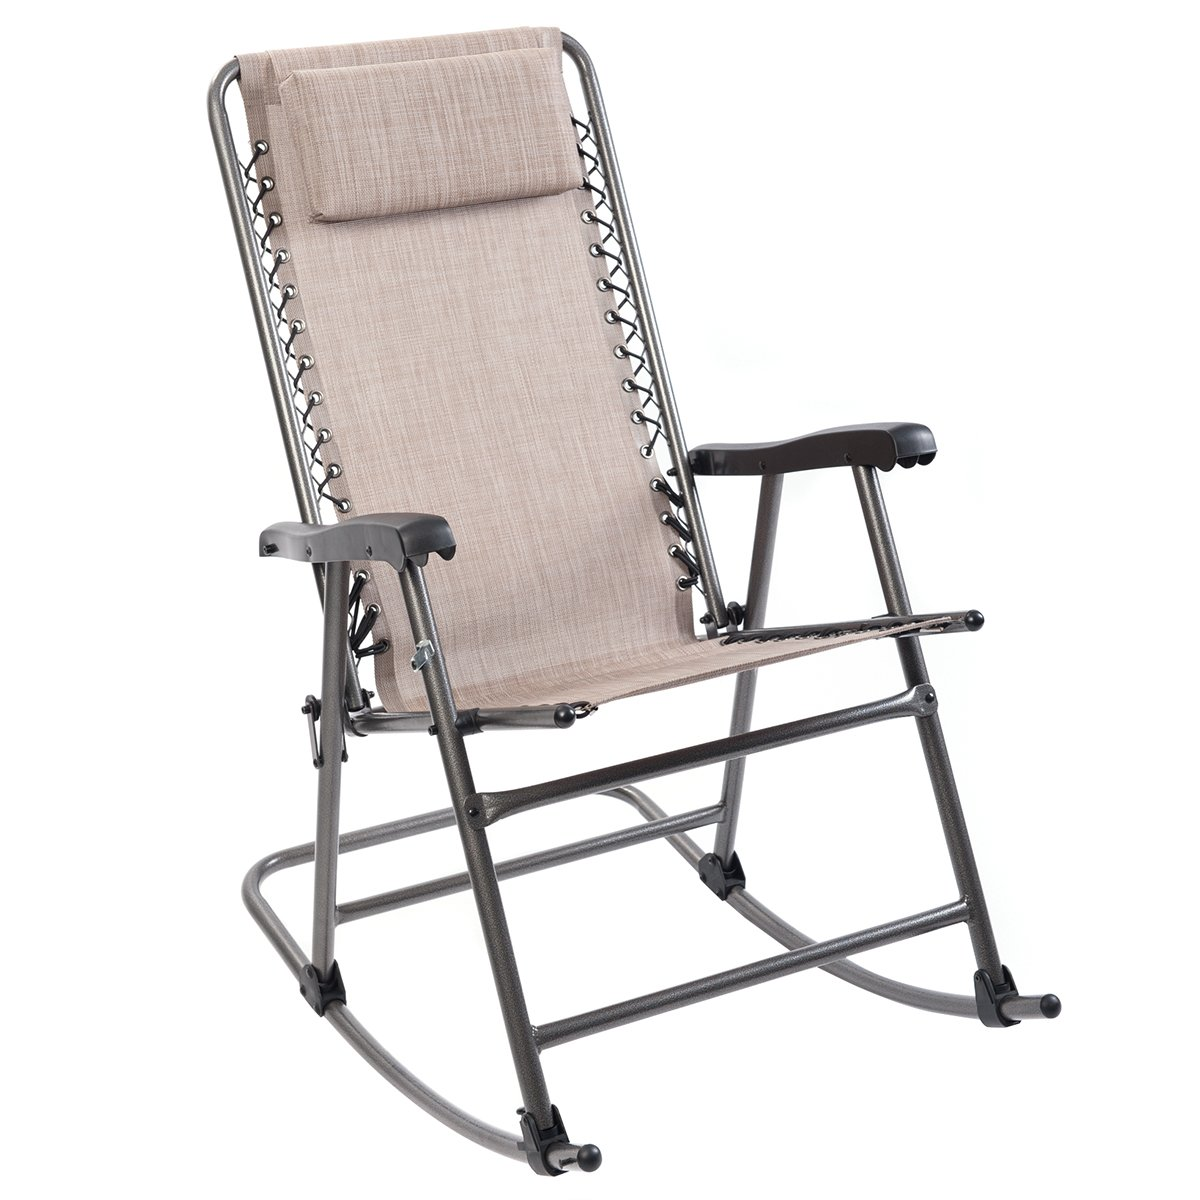 Timber Ridge Smooth Glide Lightweight Padded Folding Rocking Chair for Outdoor and Support up to 300lbs, Beige by Timber Ridge